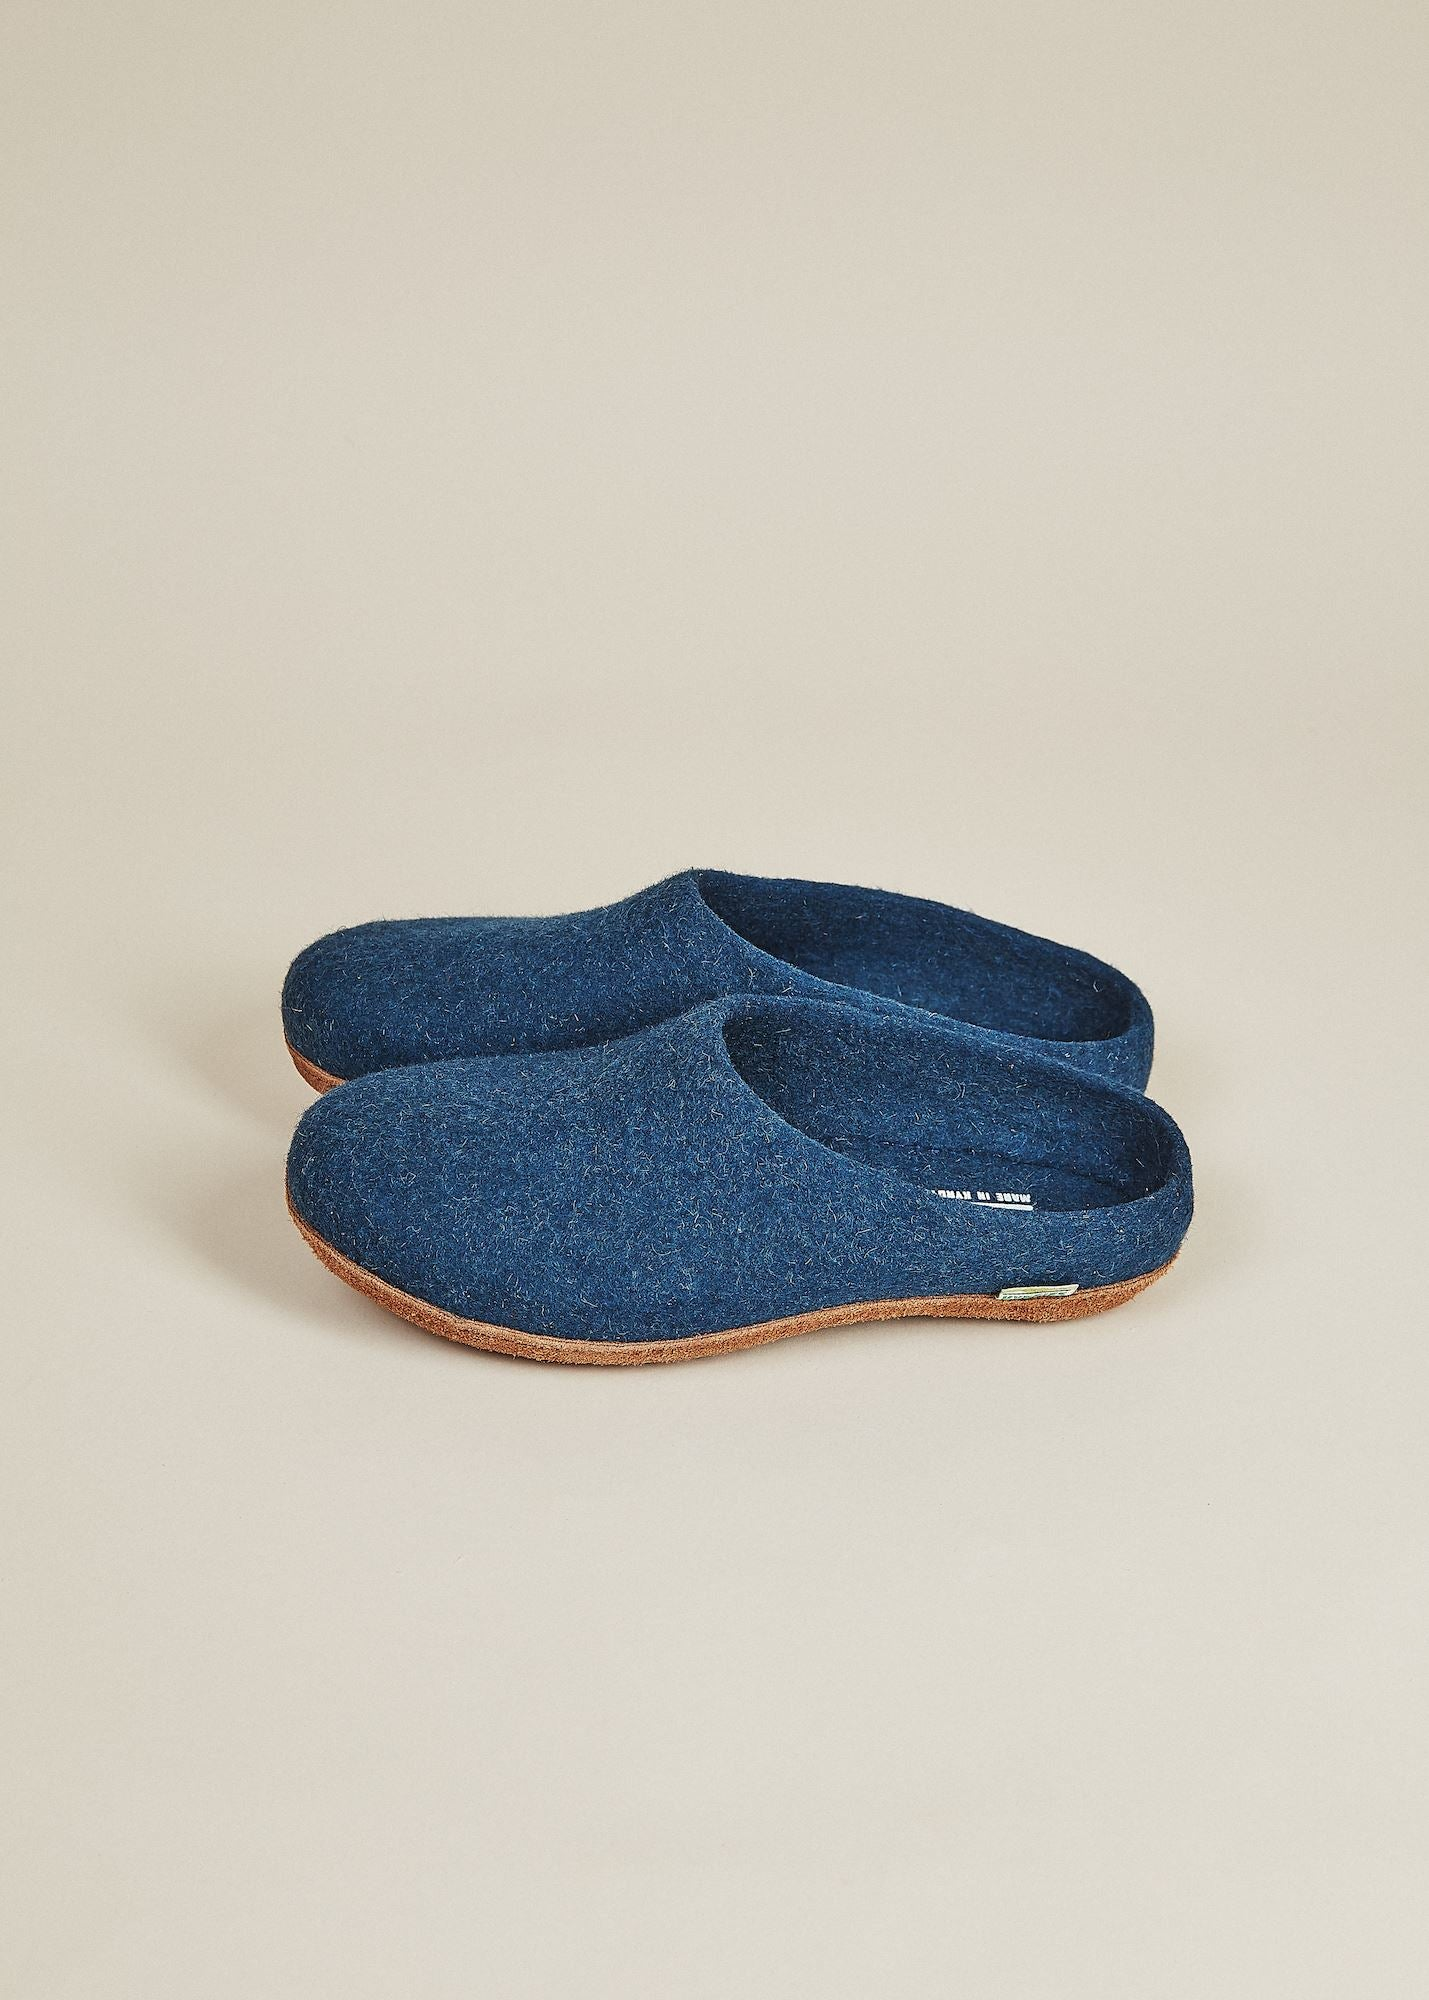 Women's Low Back and Molded Sole Slippers - Navy Women's Shoes Kyrgies